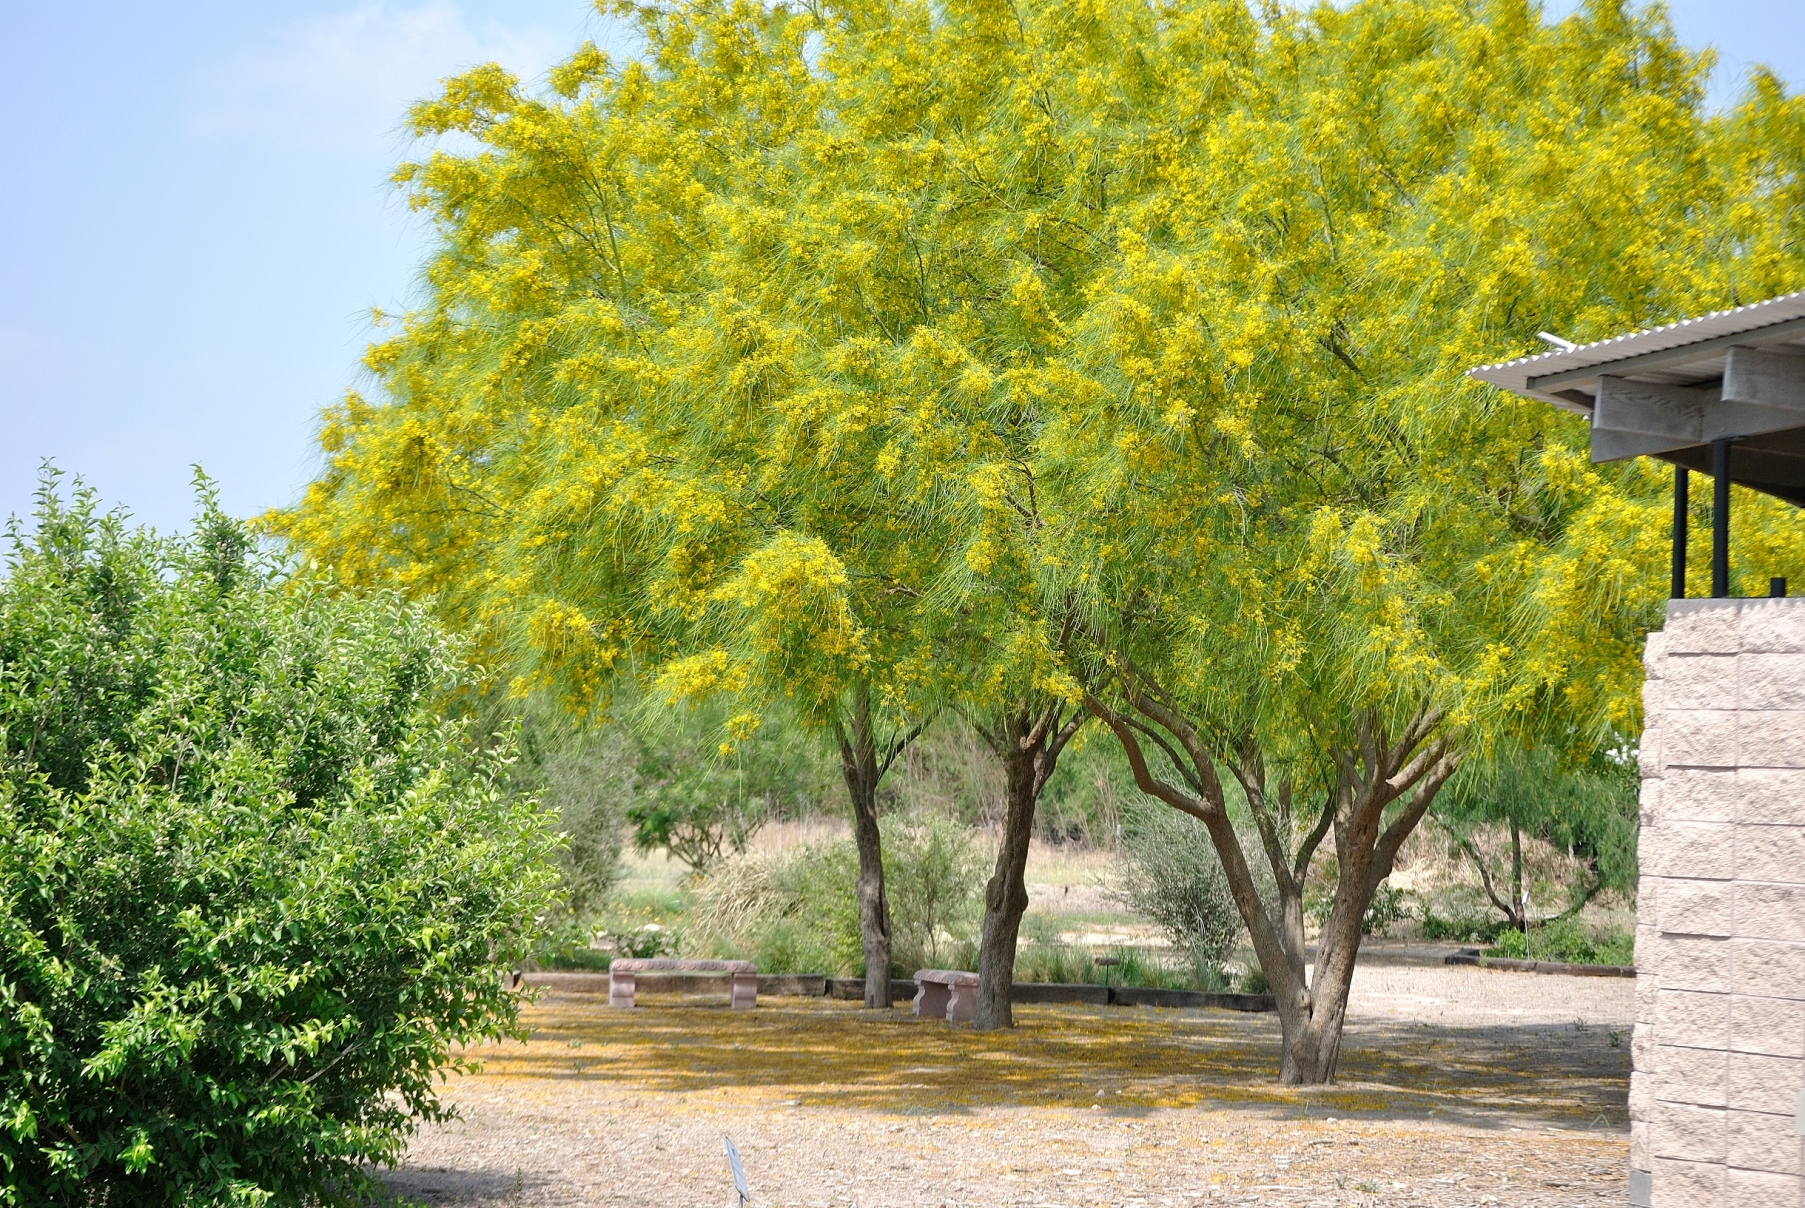 Paloverde trees in bloom at the National Butterfly Center in Mission, Texas.